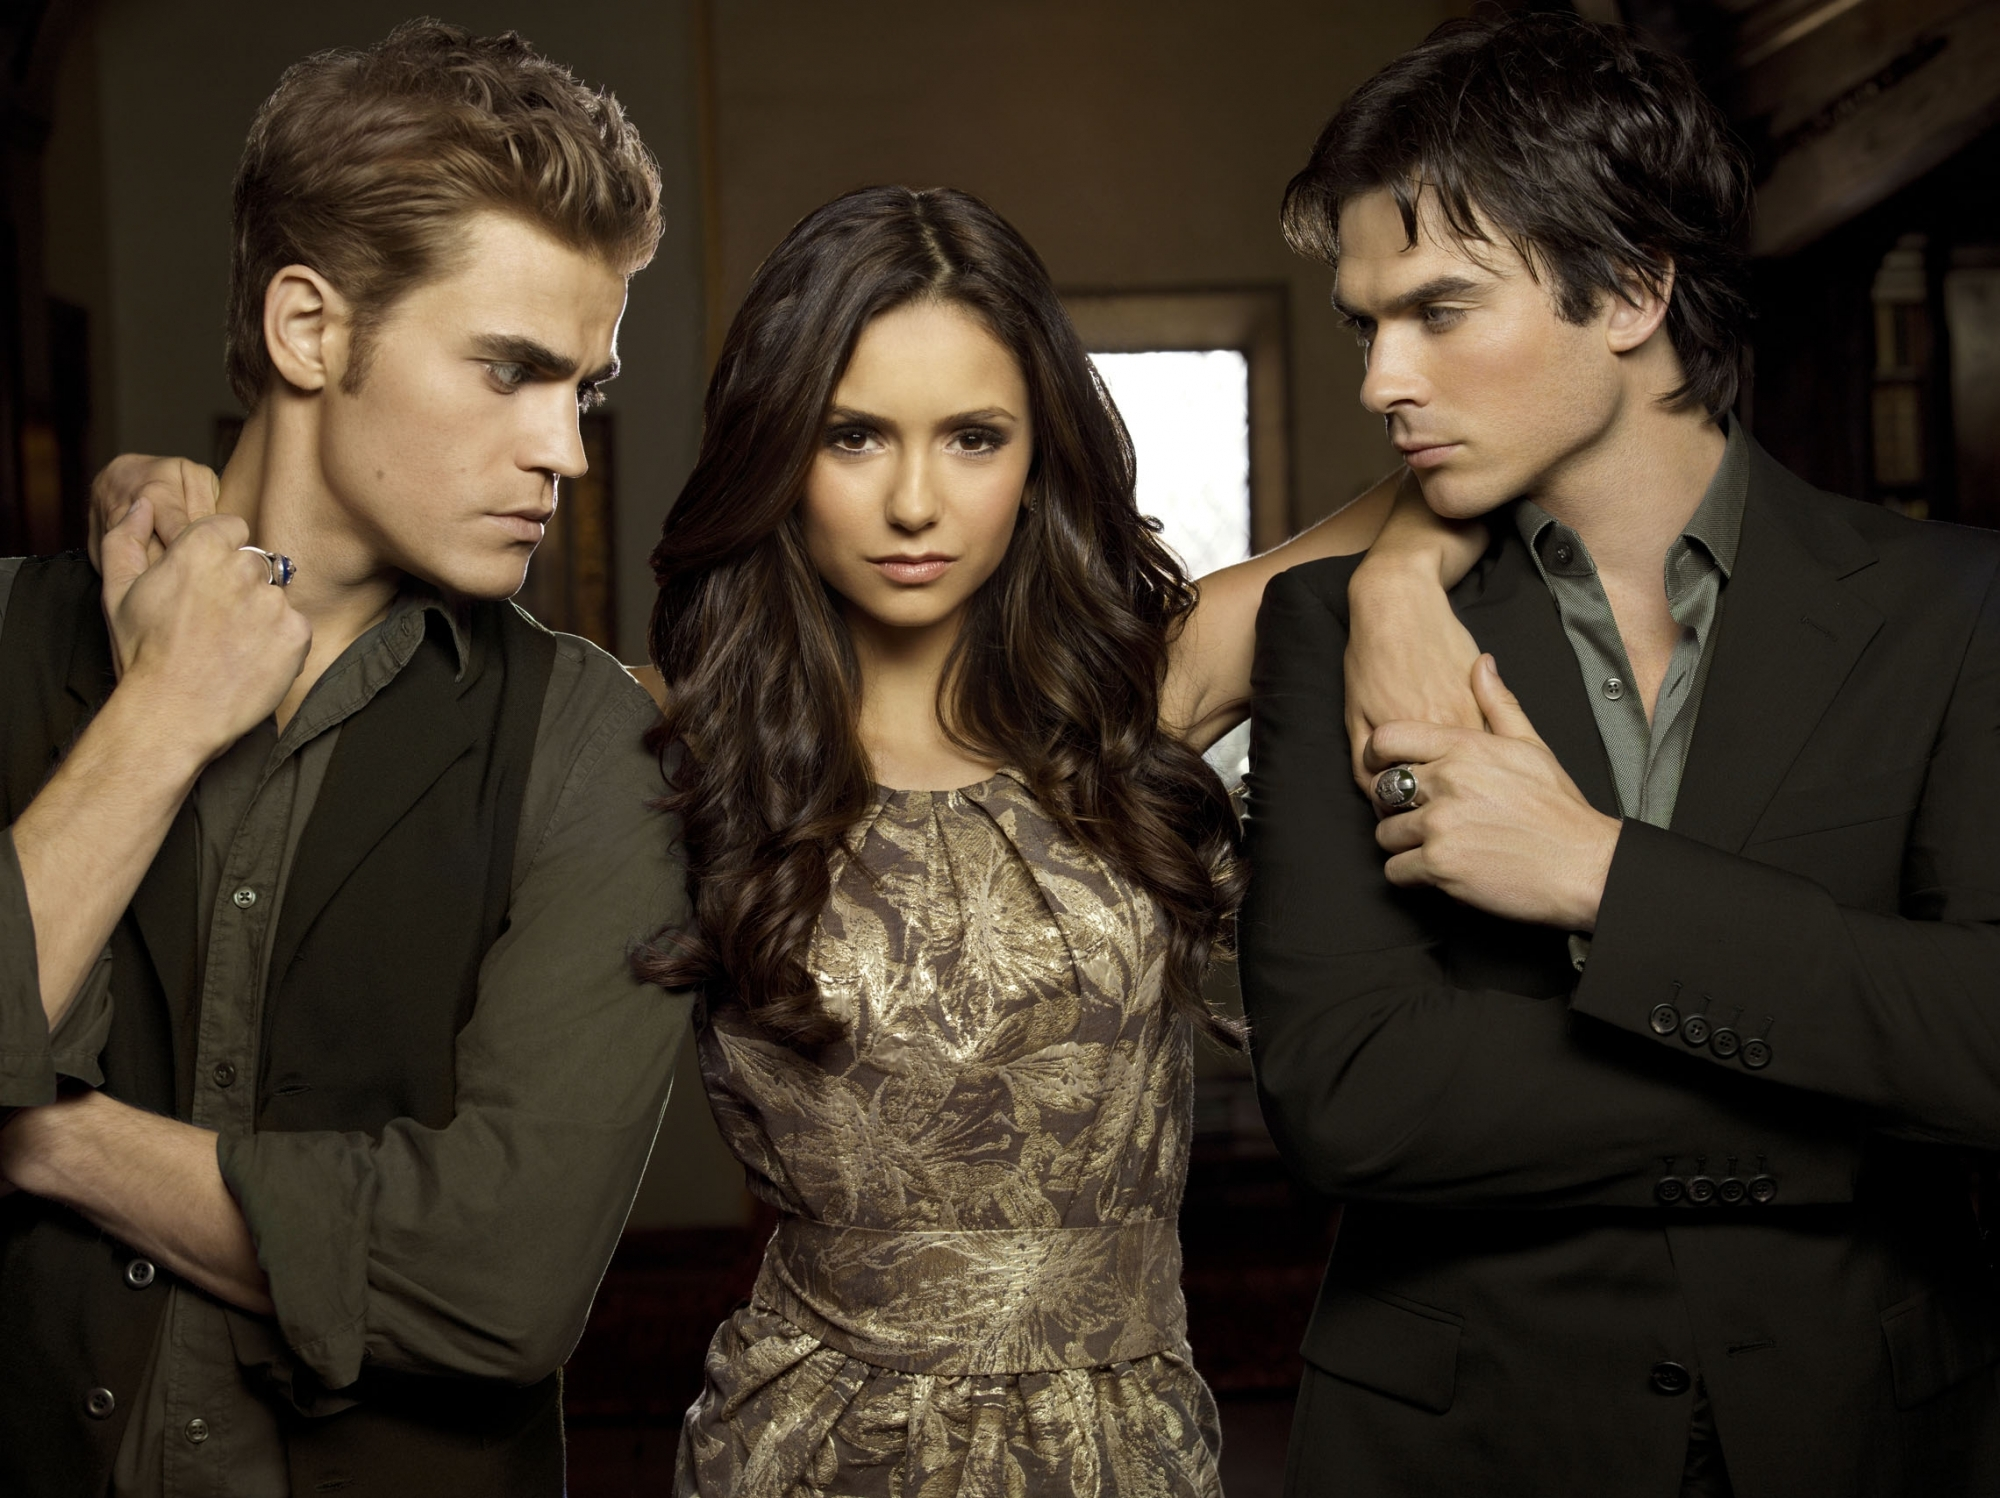 EXCLUSIVE: Want some juicy Vampire Diaries secrets from ...